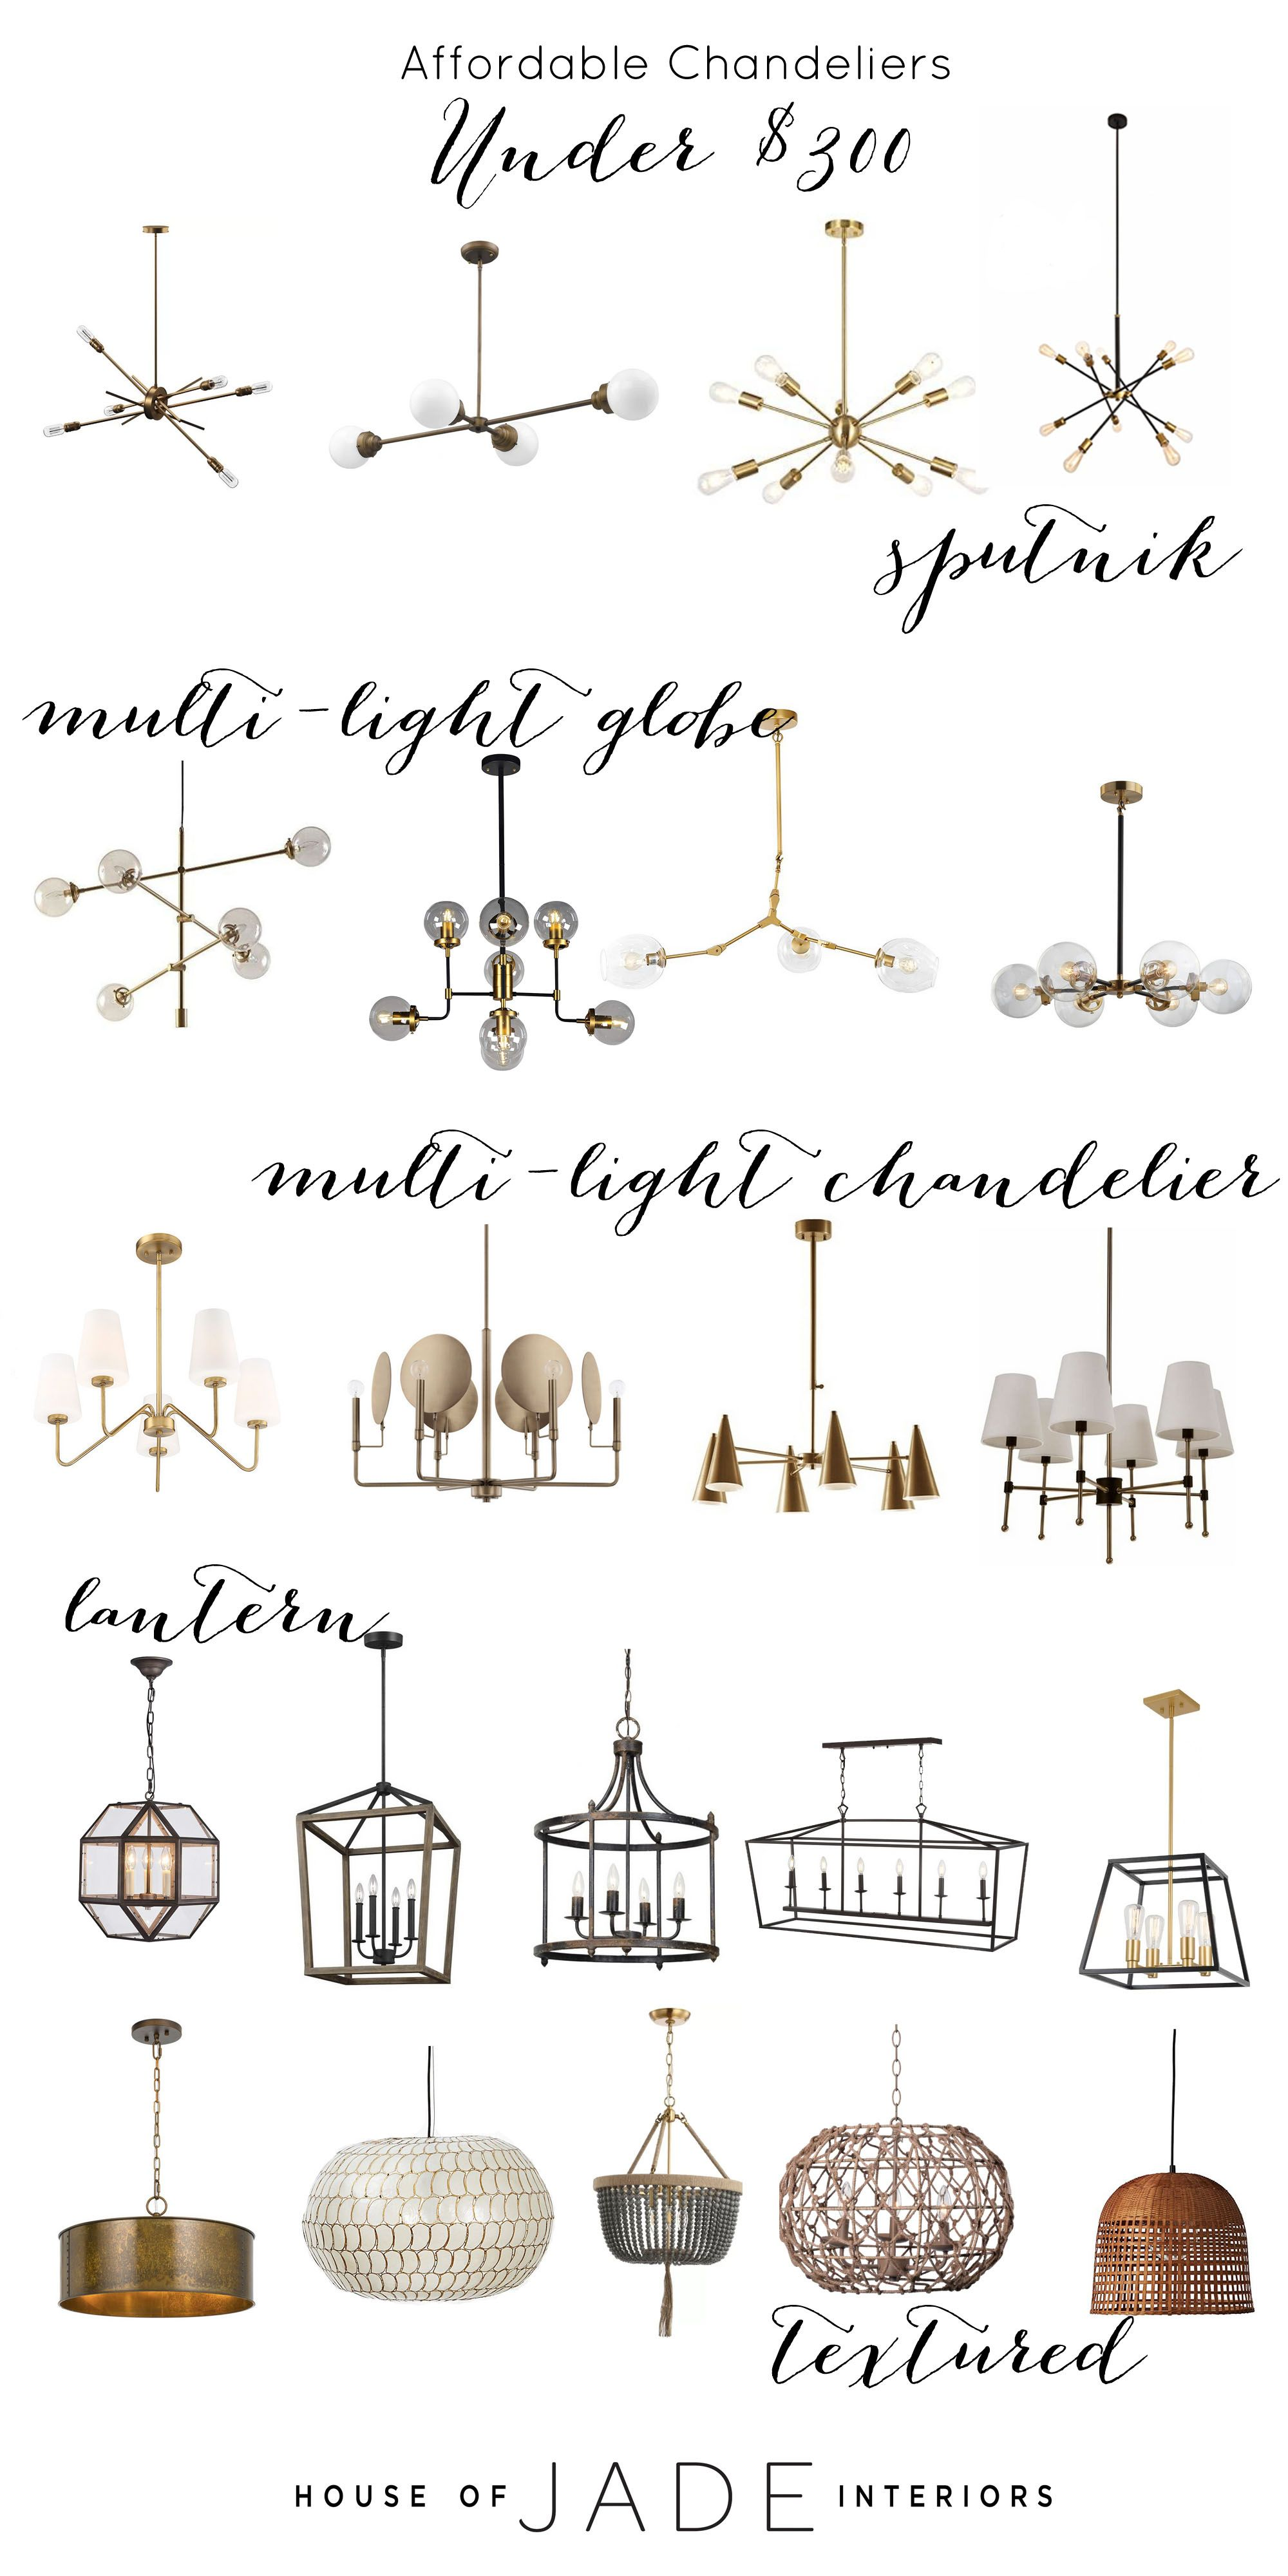 Affordable Chandelier Round-up (Chandeliers under $350!)